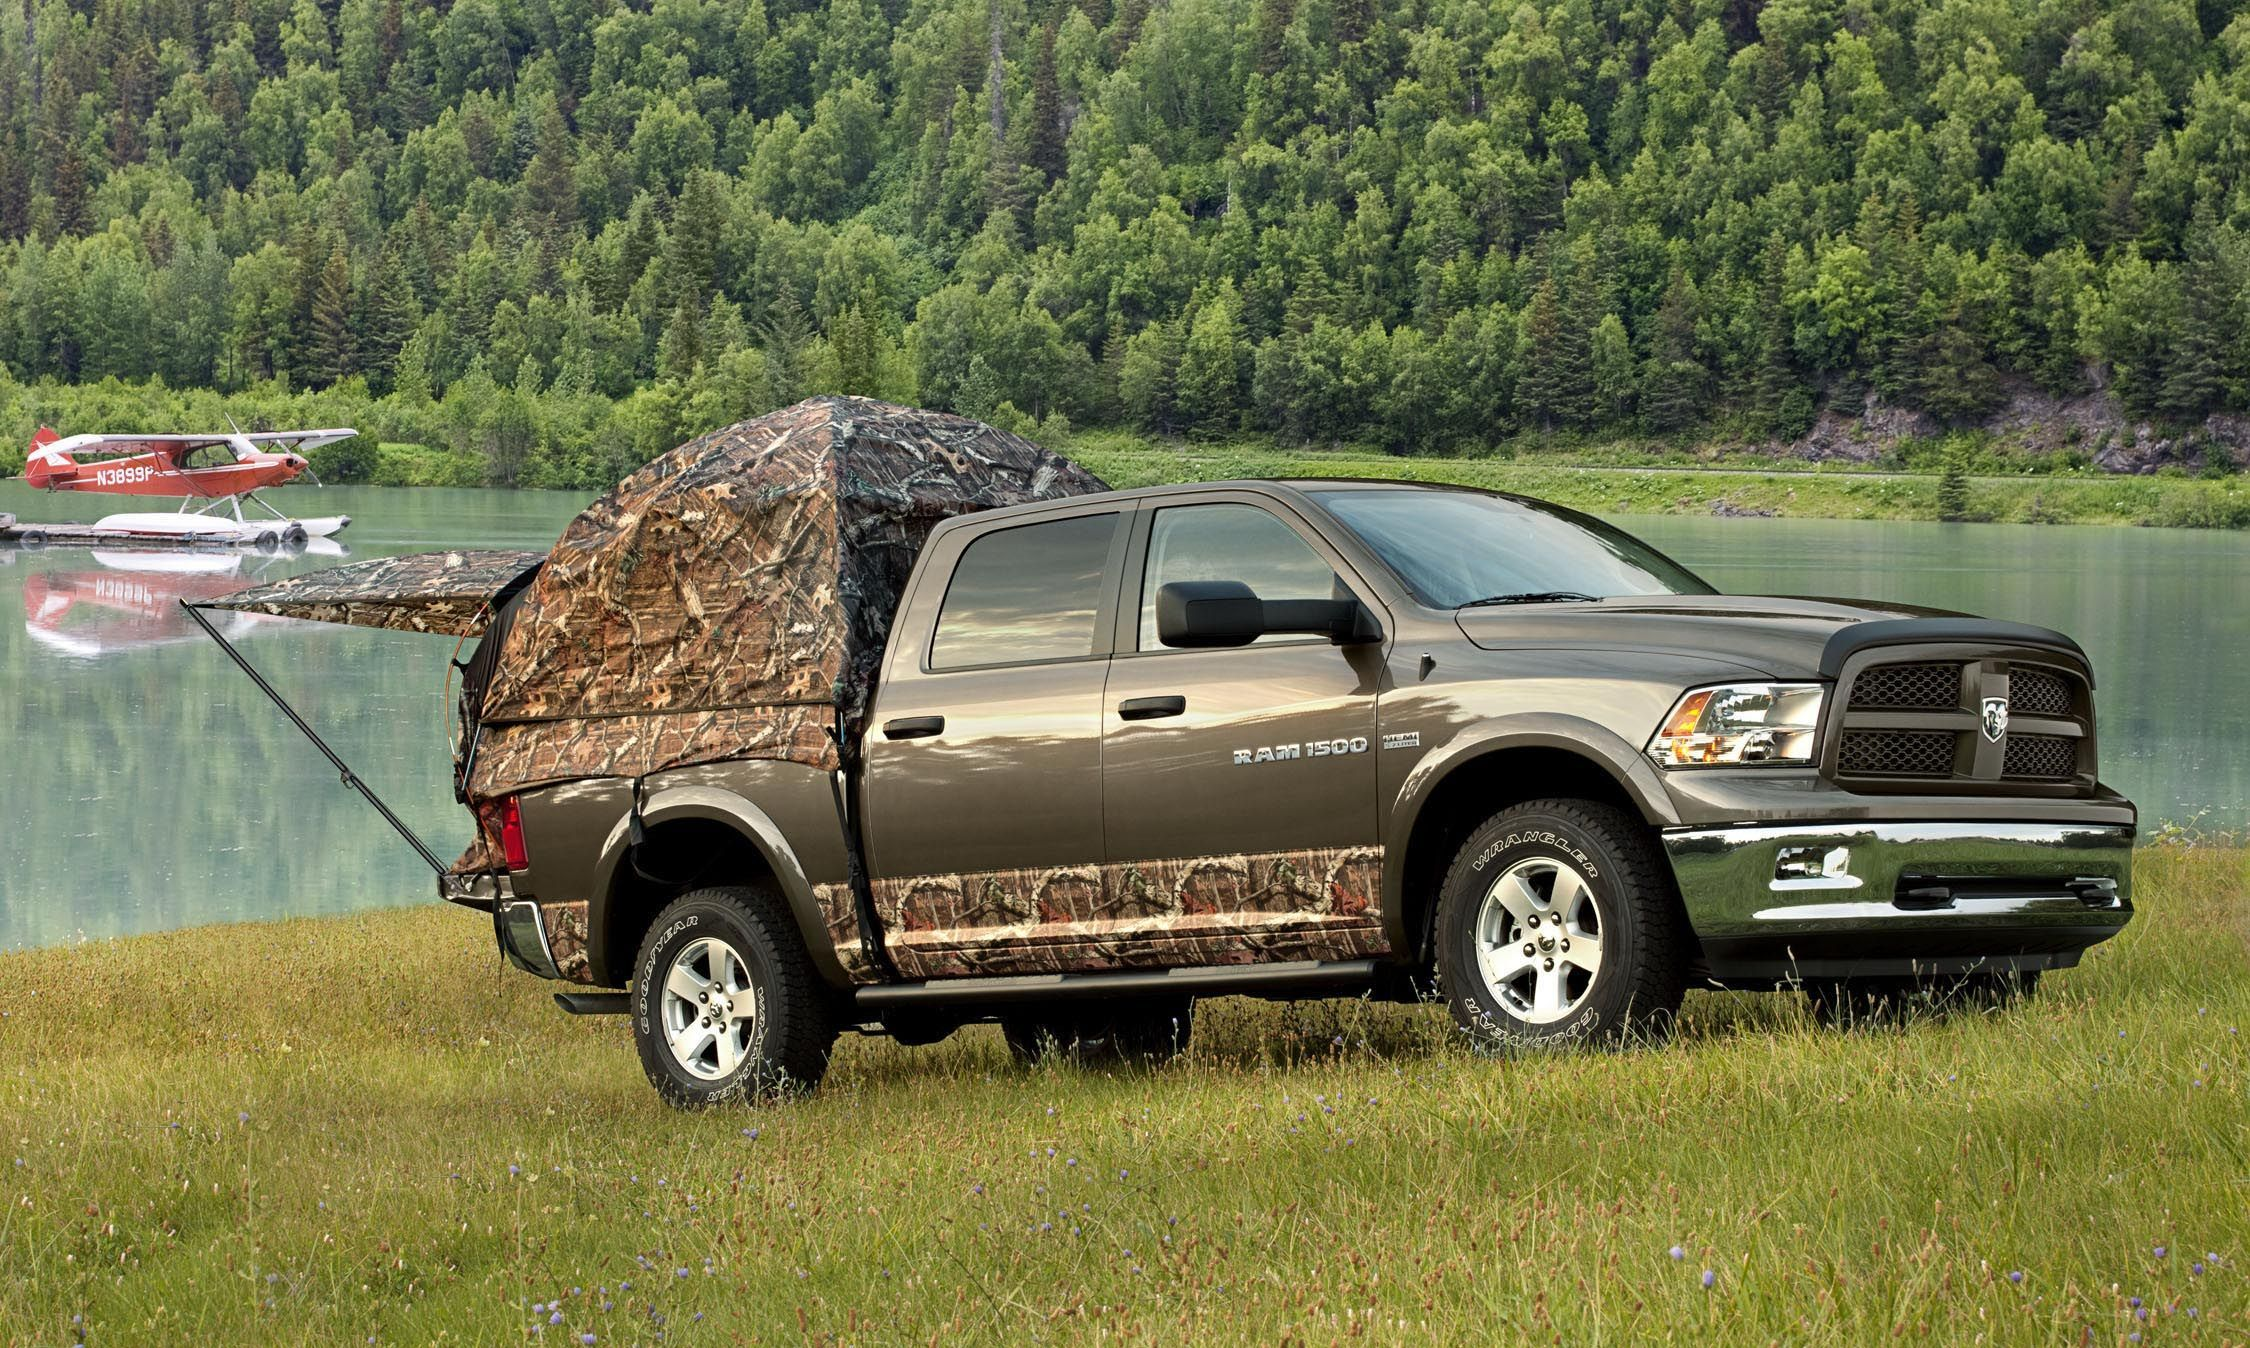 Napier Camo Truck Camping Tent on the new Ram Outdoorsman